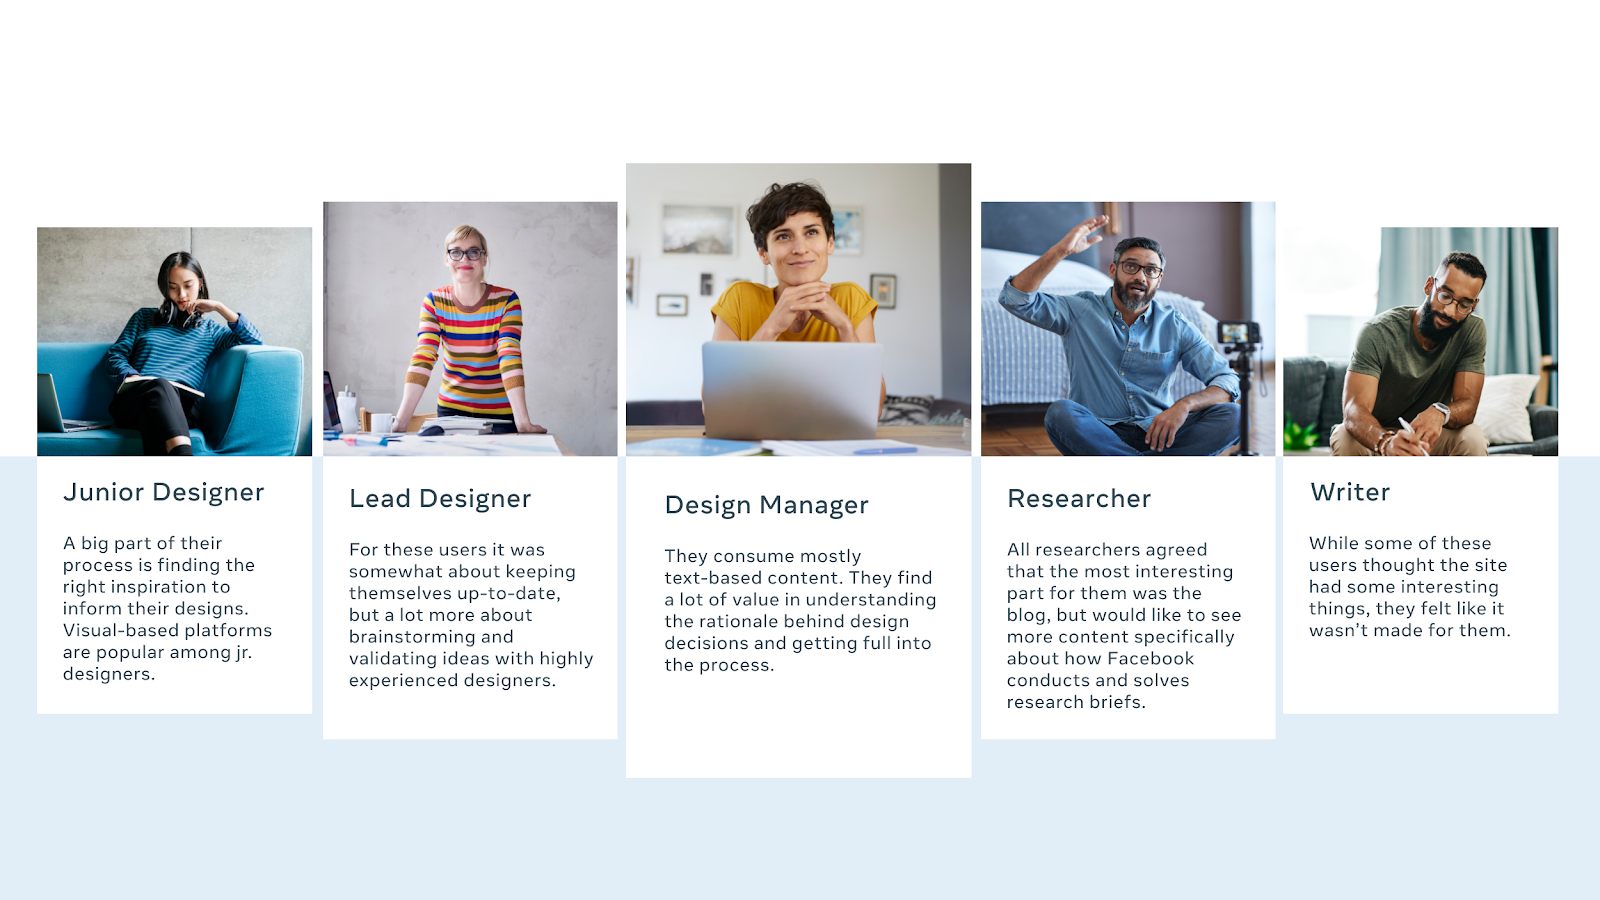 Five faces represent the junior designer, the lead designer, the design manager, the researcher, a writer, and their needs.